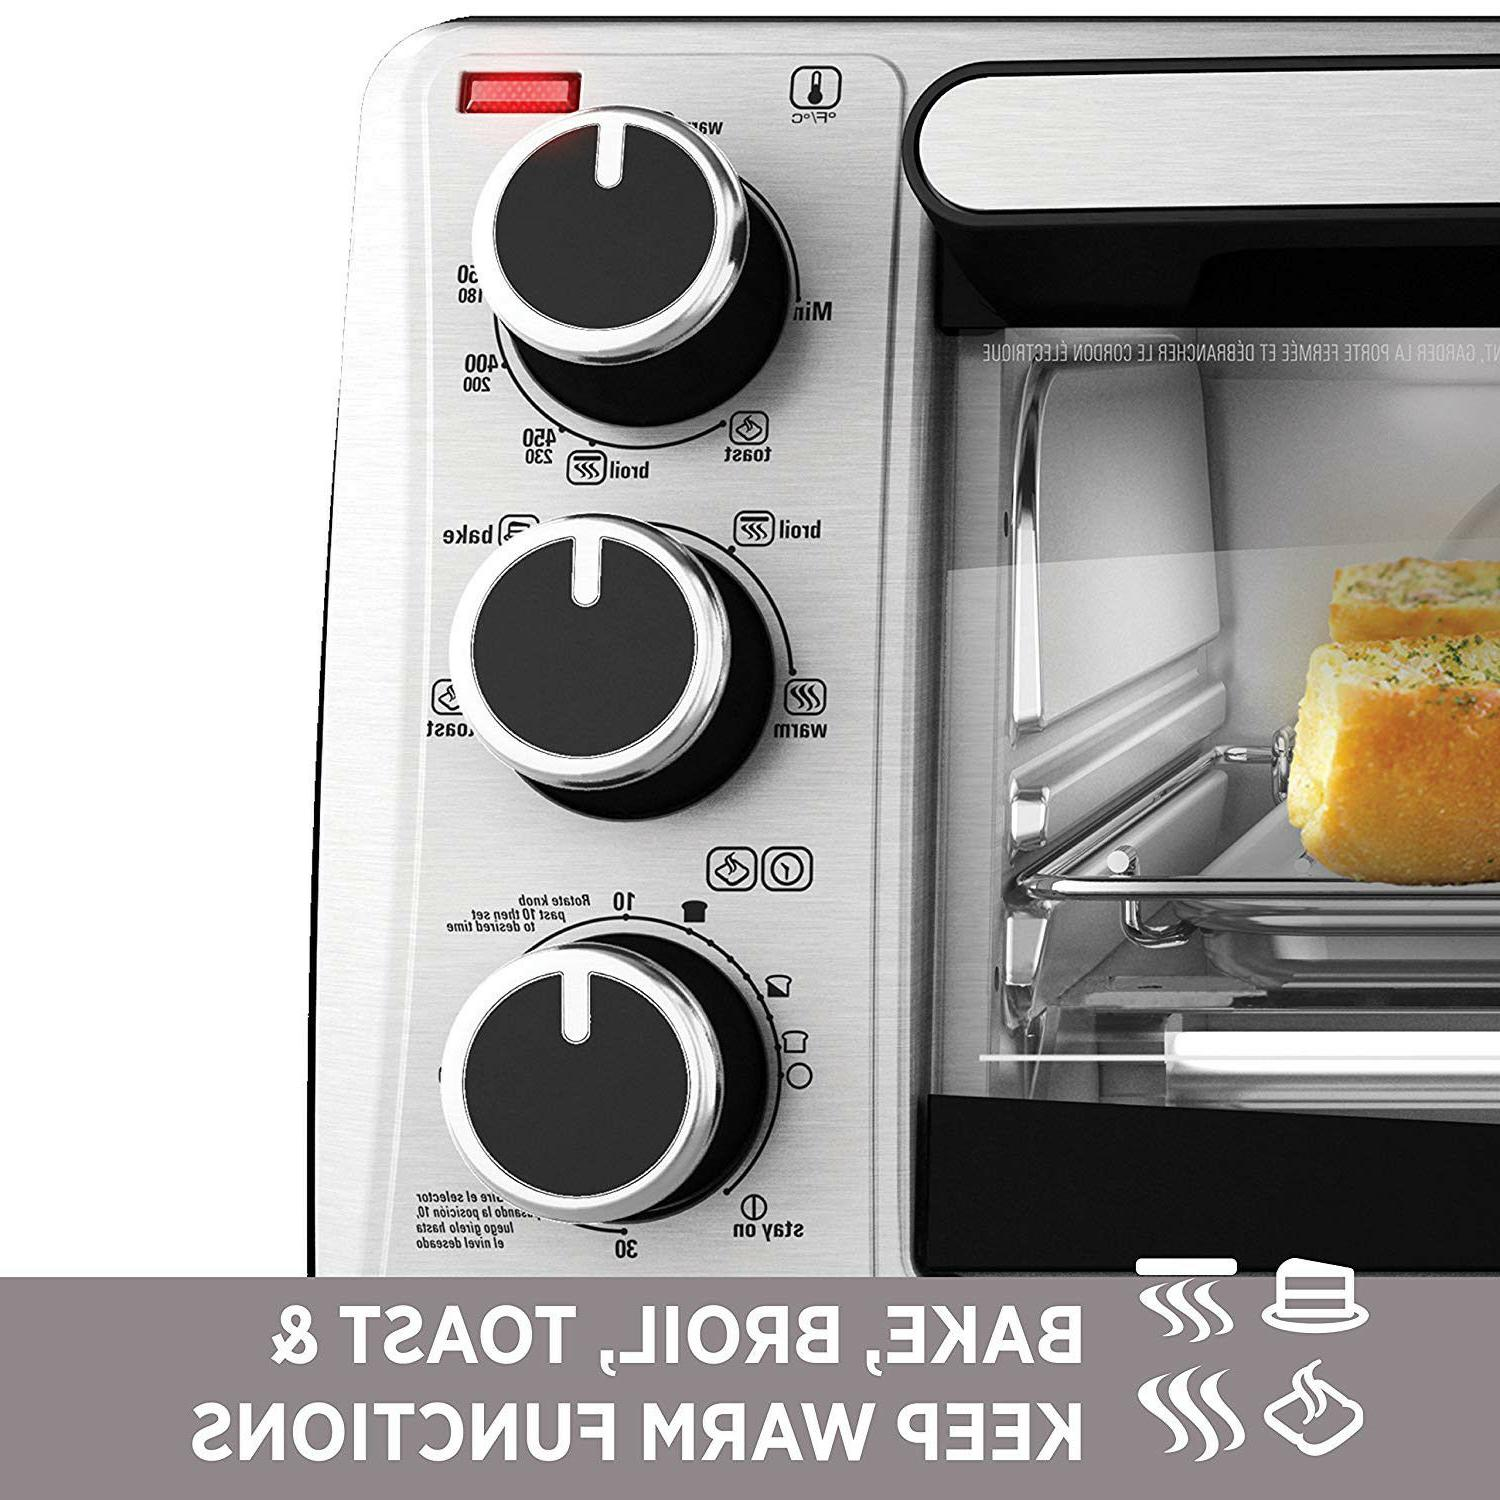 Stainless Steel Countertop Toaster Oven Baking Cooking Black